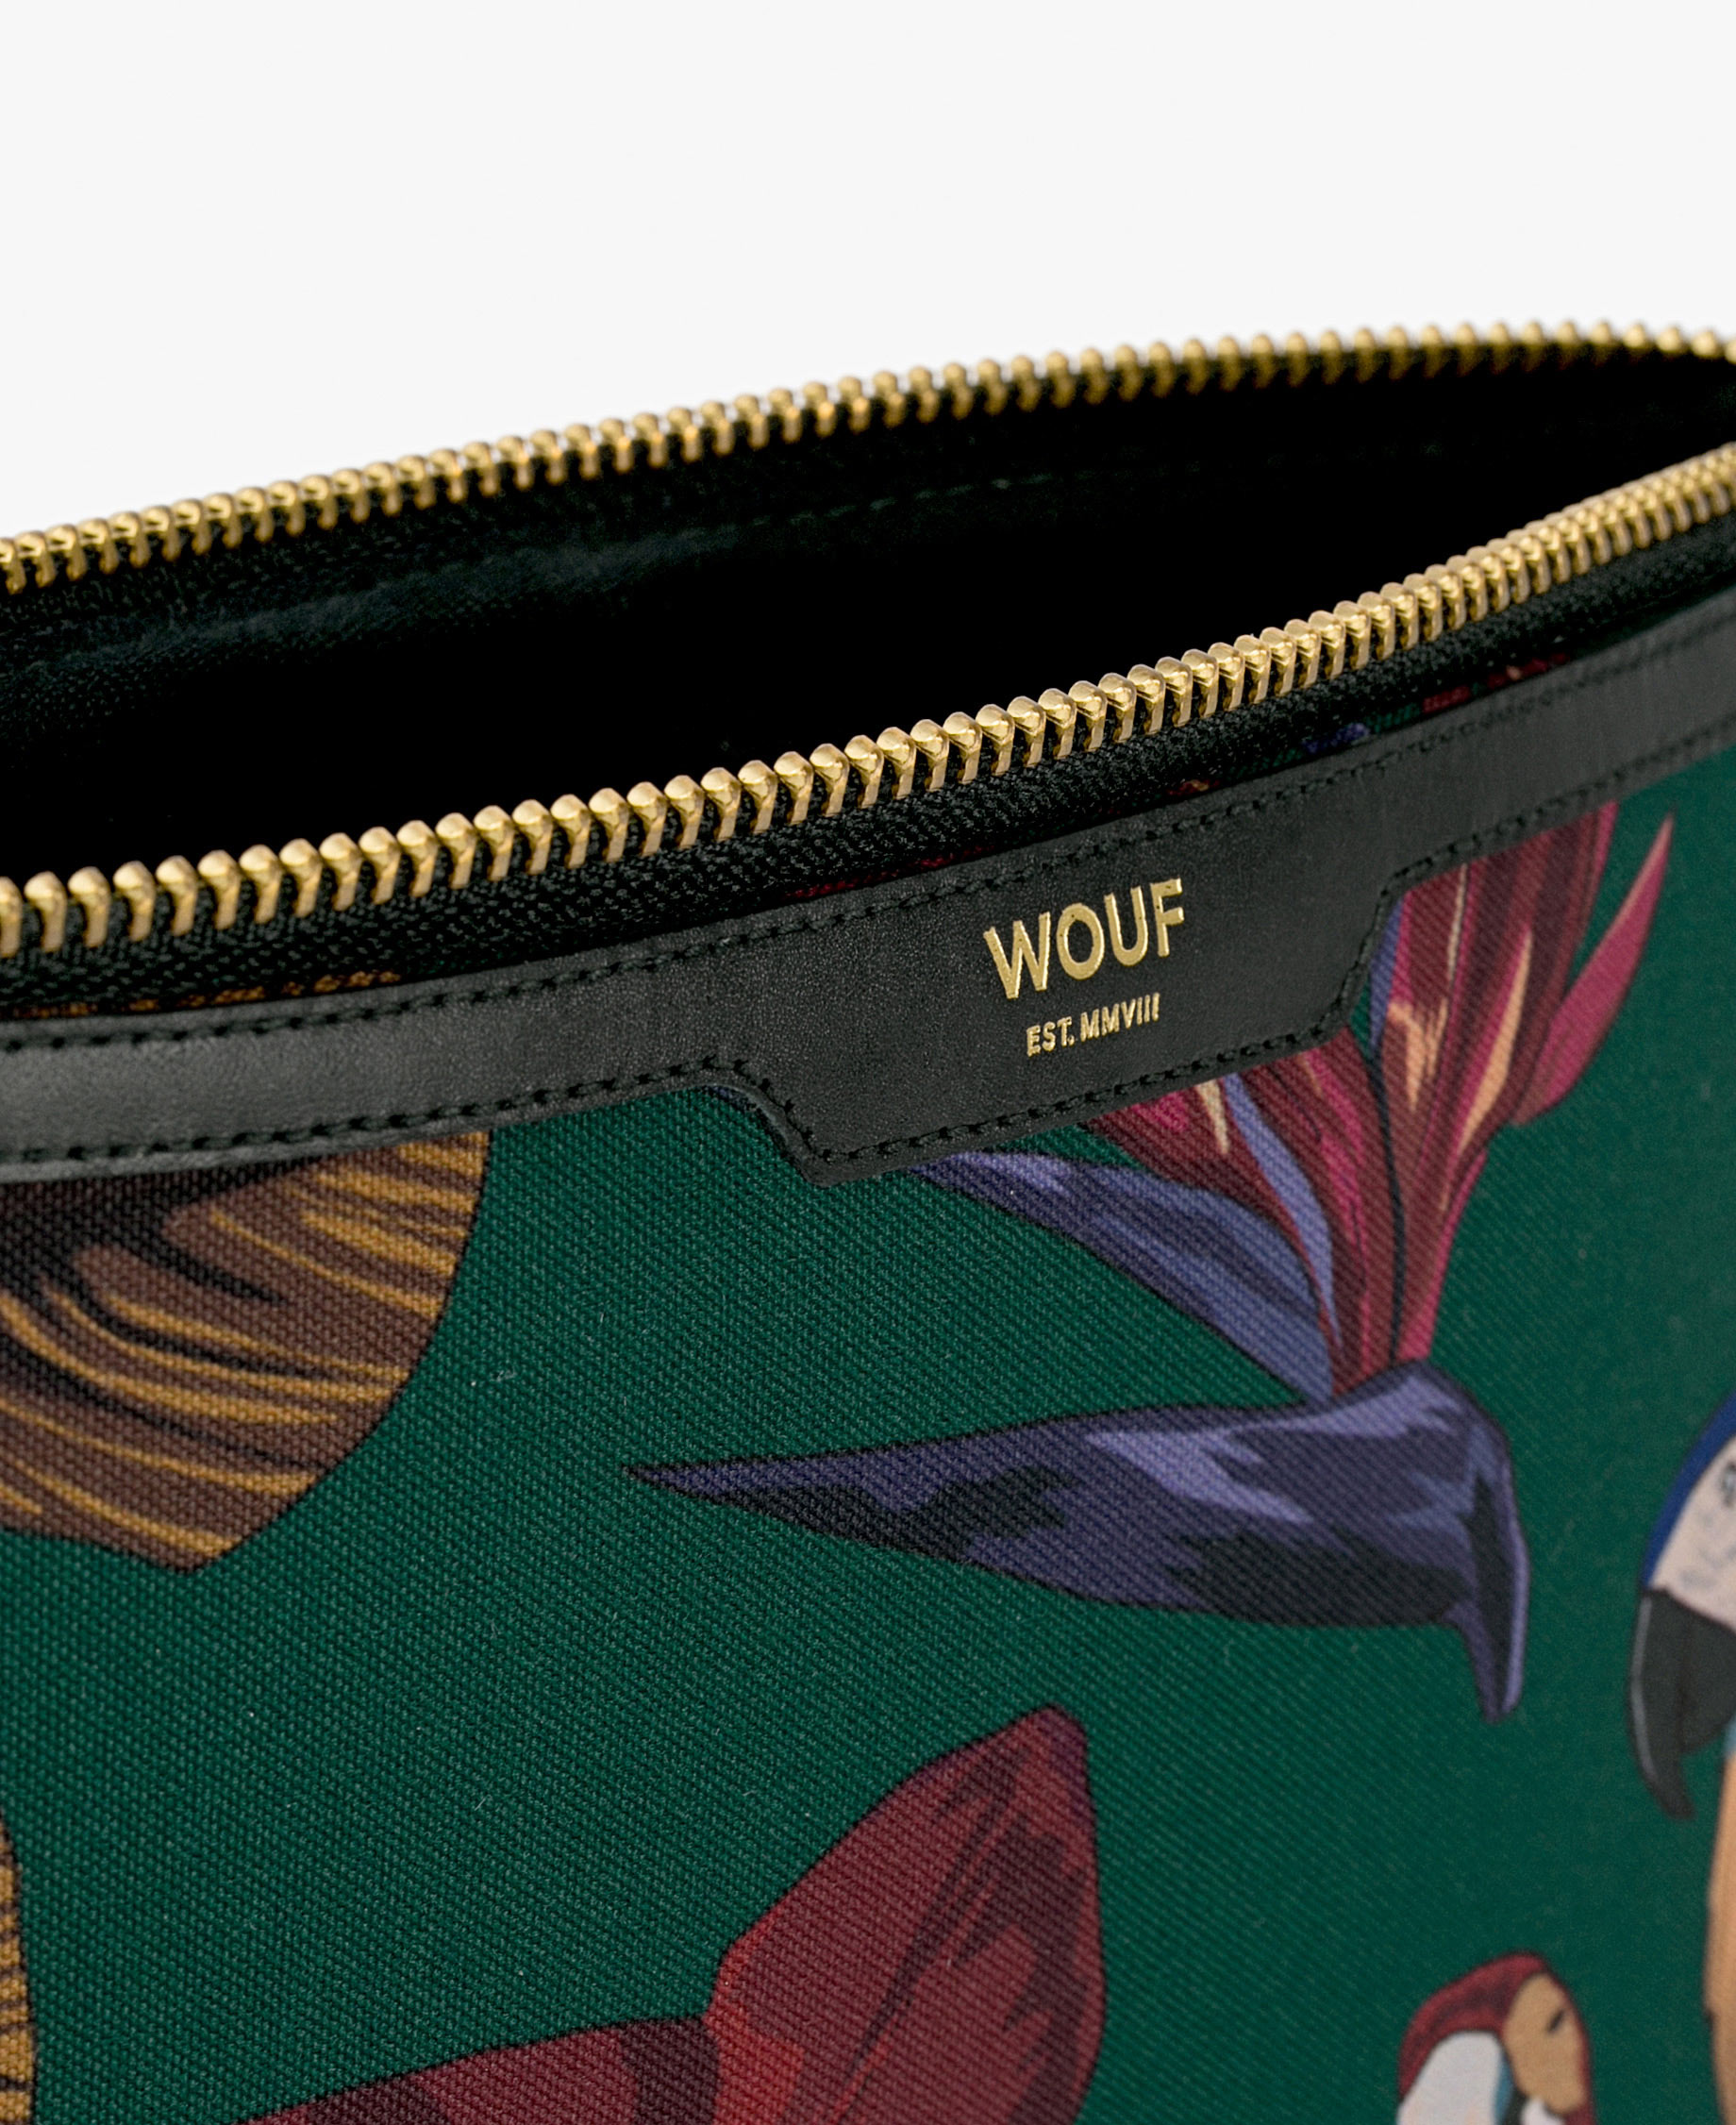 ipad case with golden zipper and leather details